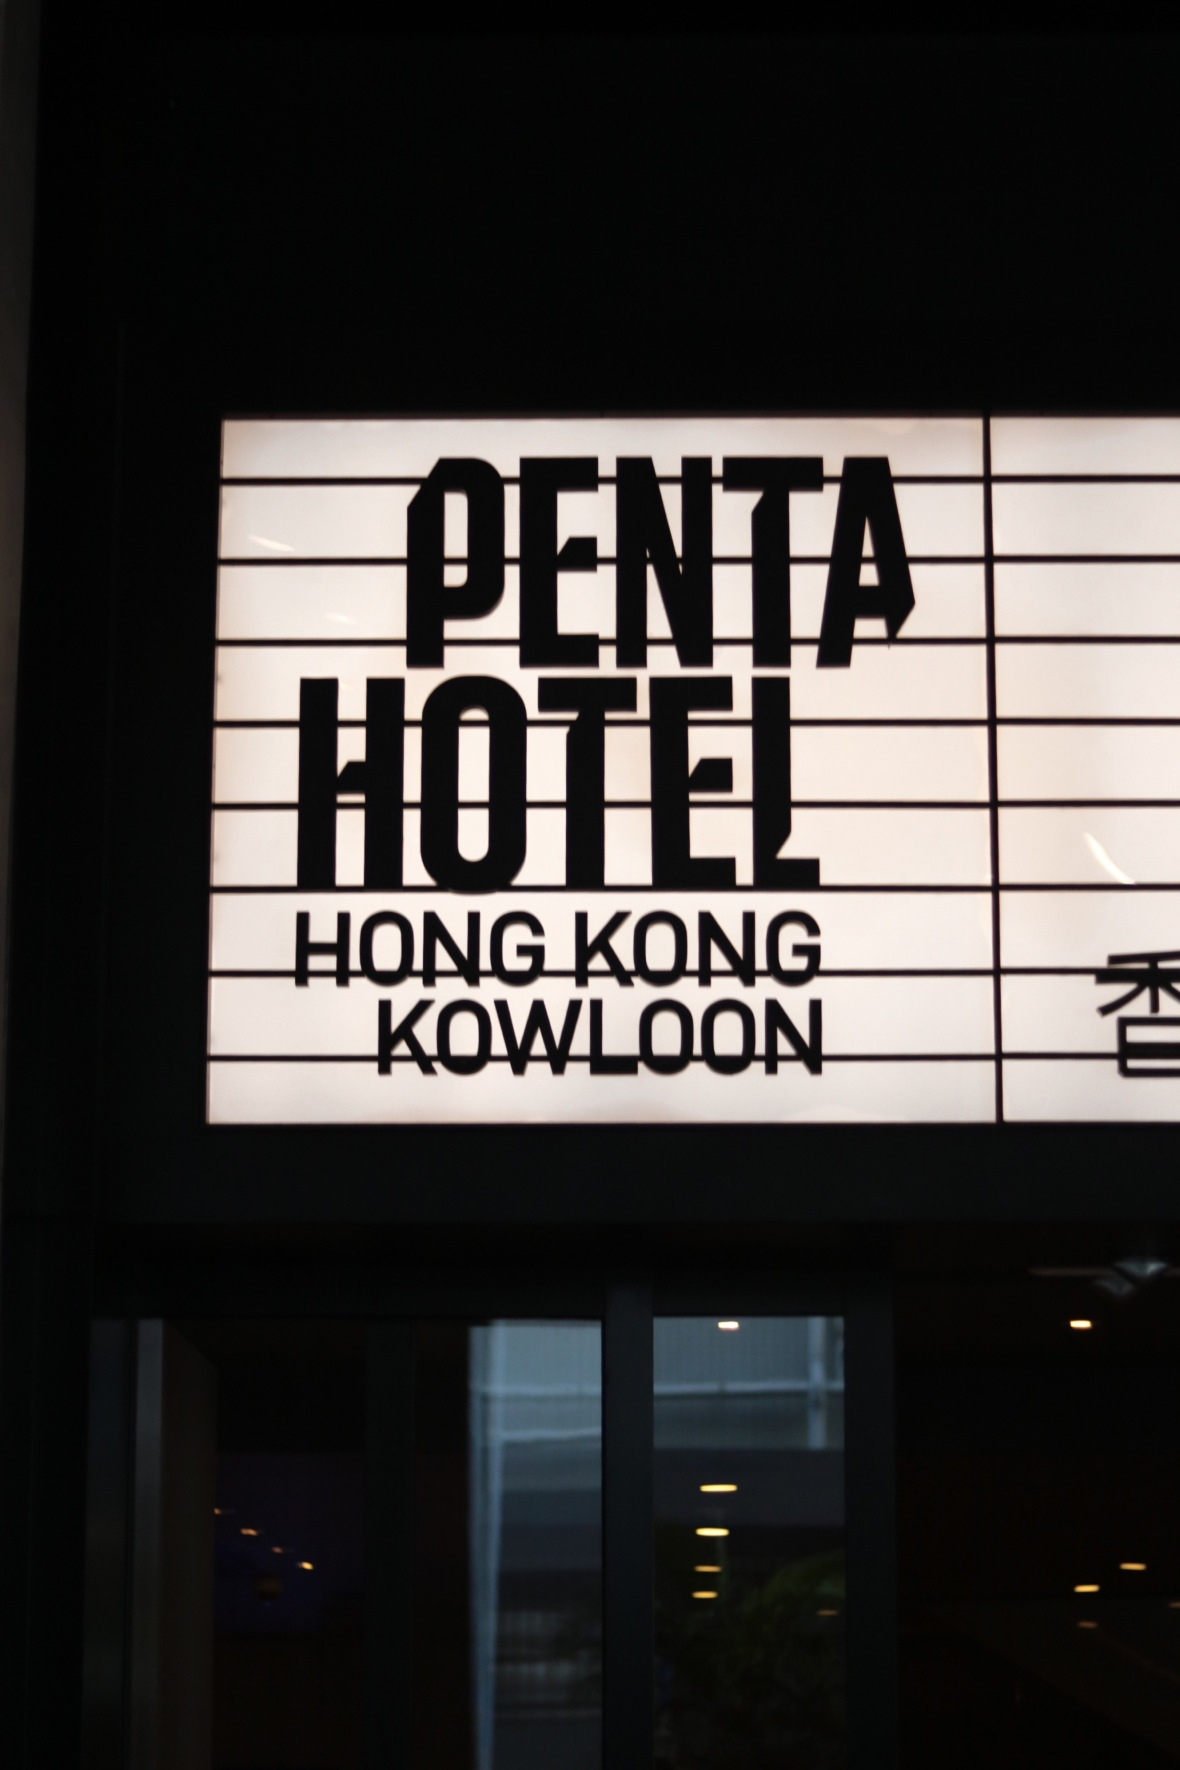 The Pentahotel Hong Kong review blogger And A Thousand Words